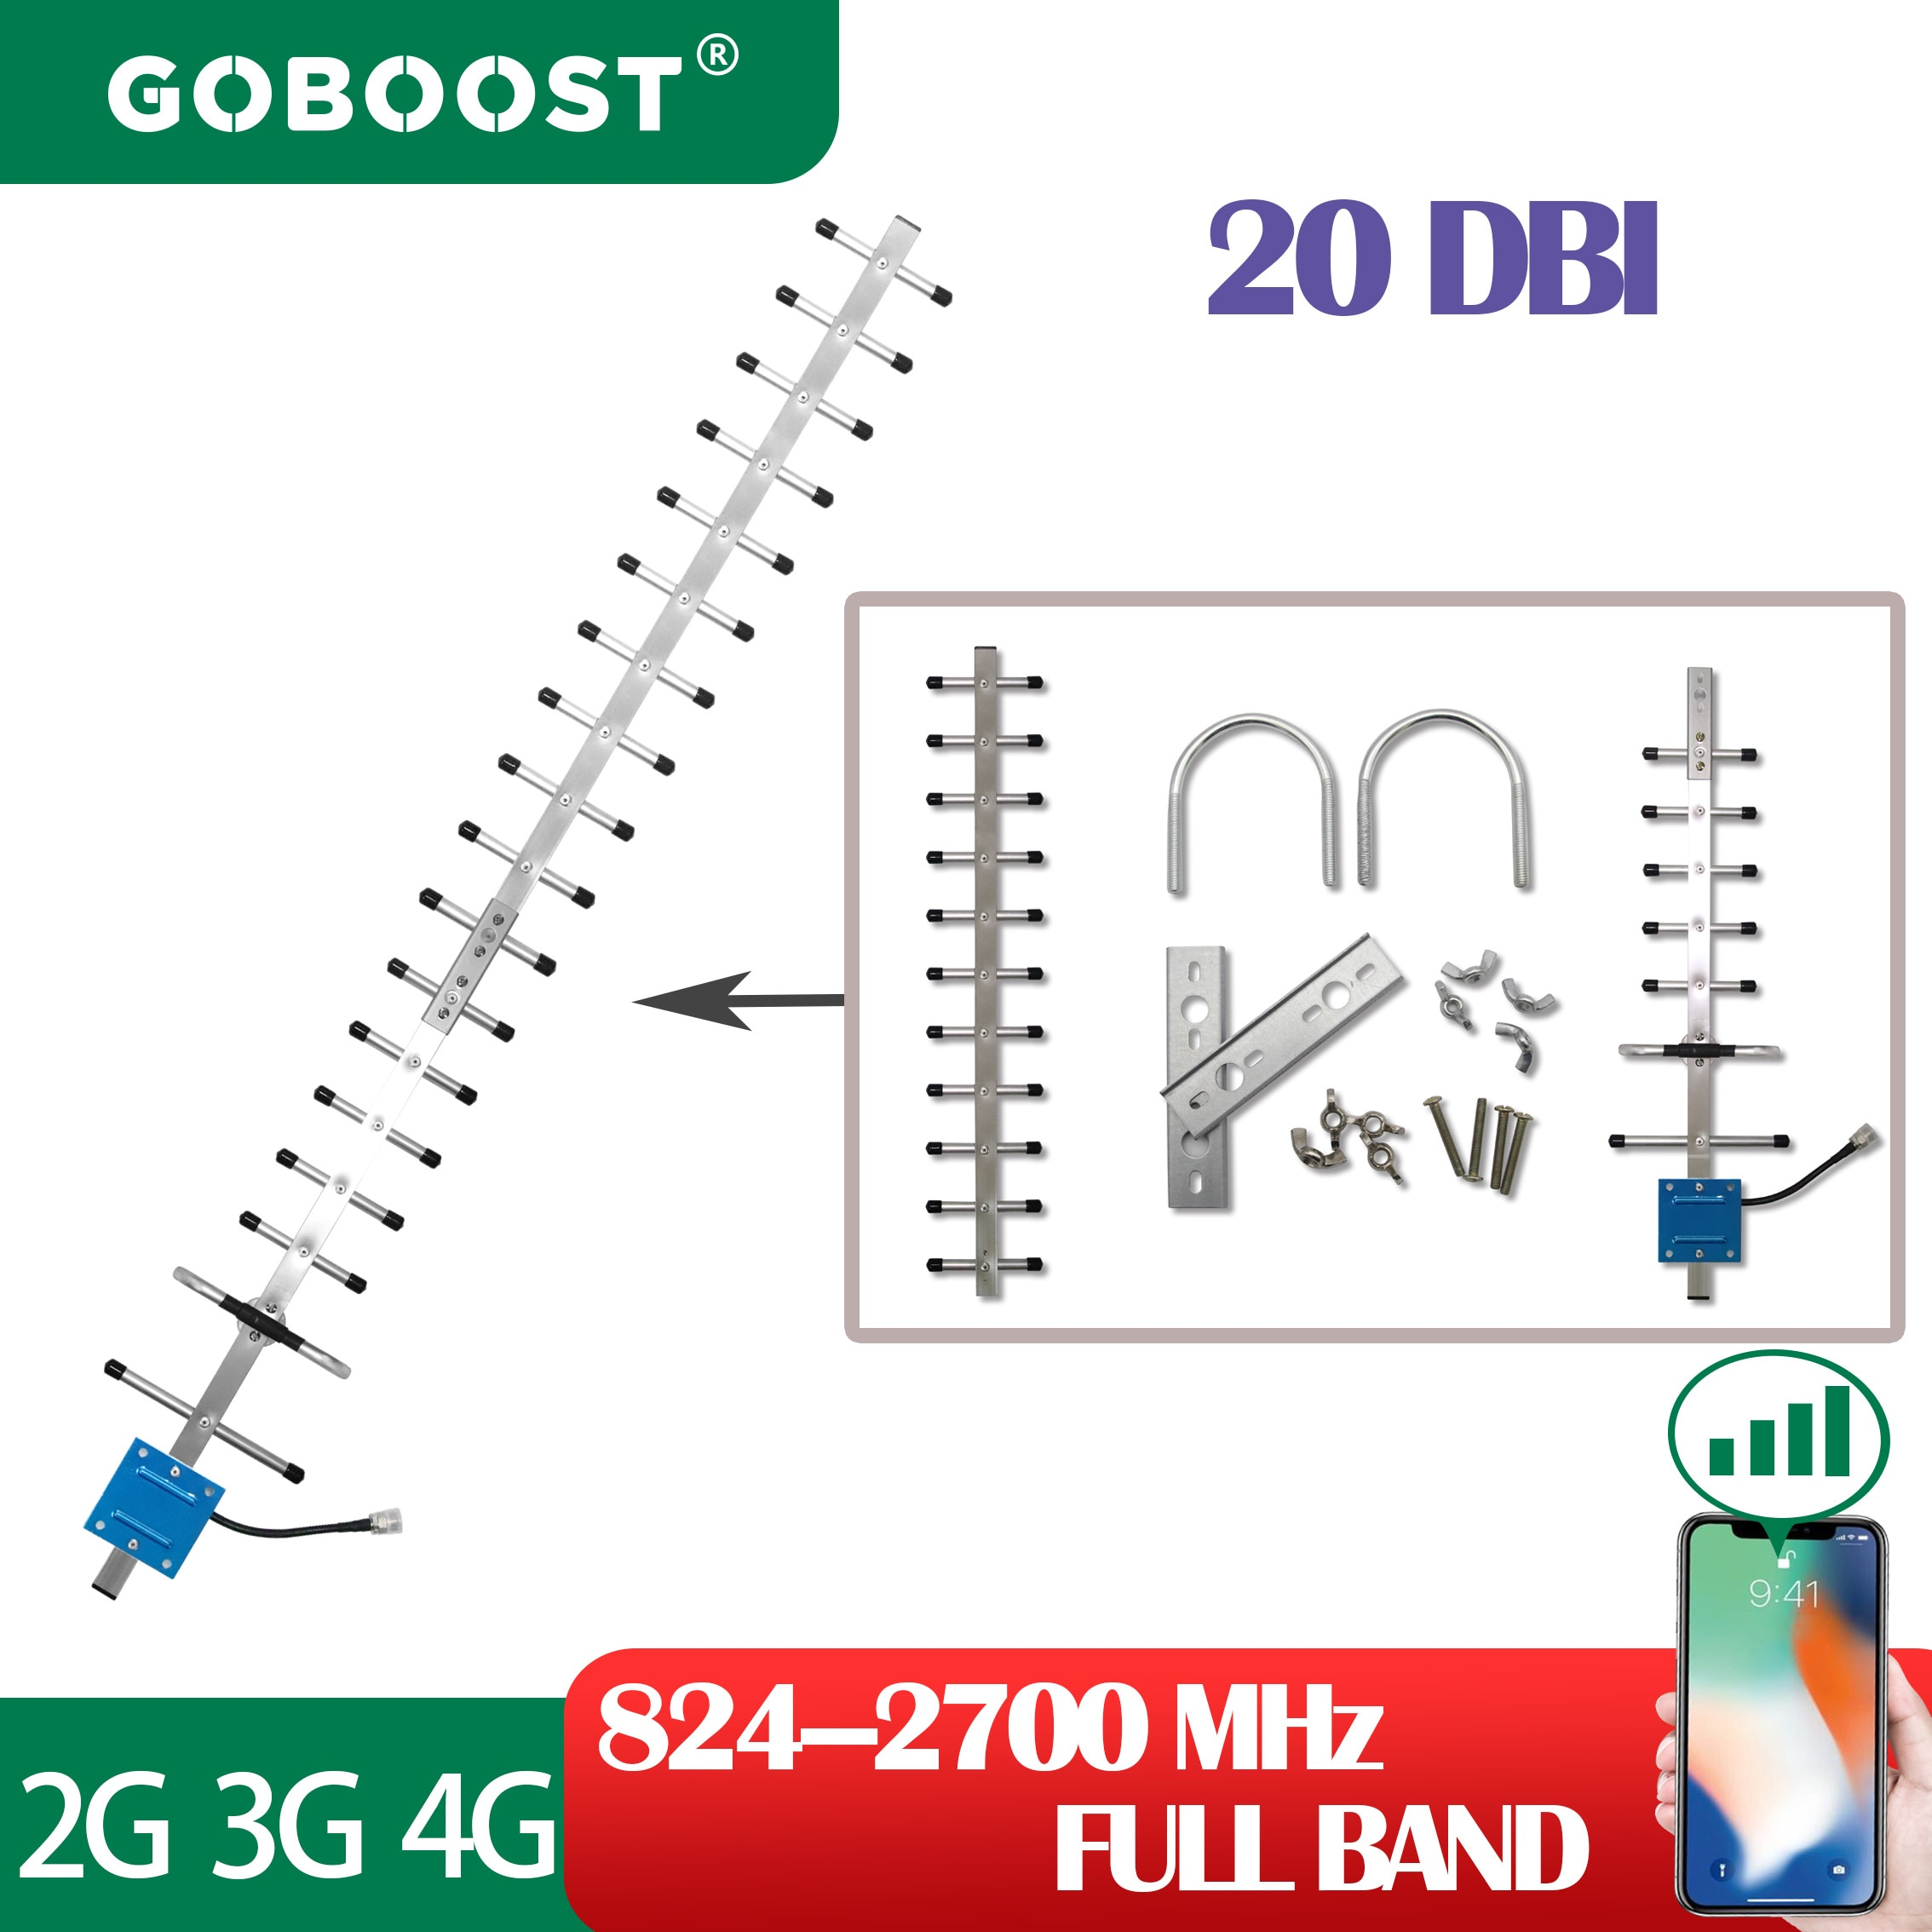 GOBOOST 3g 4g Cellular Amplifier Network Outdoor Yagi Antenna 824-2700mhz Signal Boost For Internet 20DB LTE WCDMA 900 1800 2100